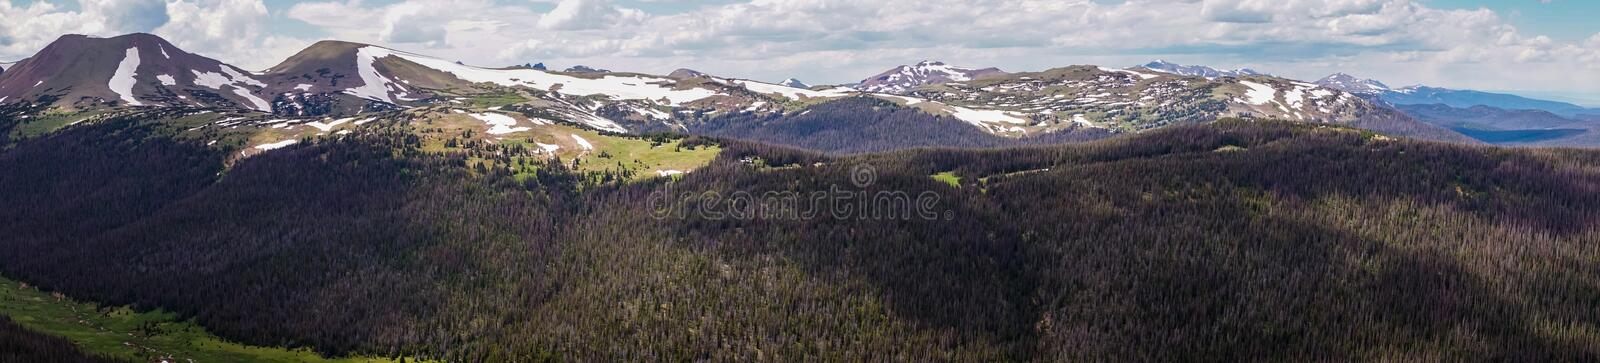 Panorama of the Rocky Mountains. Travel to the Rocky Mountain National Park. Colorado, United States. Summer high mountain valley. Rocky Mountain National Park royalty free stock photography